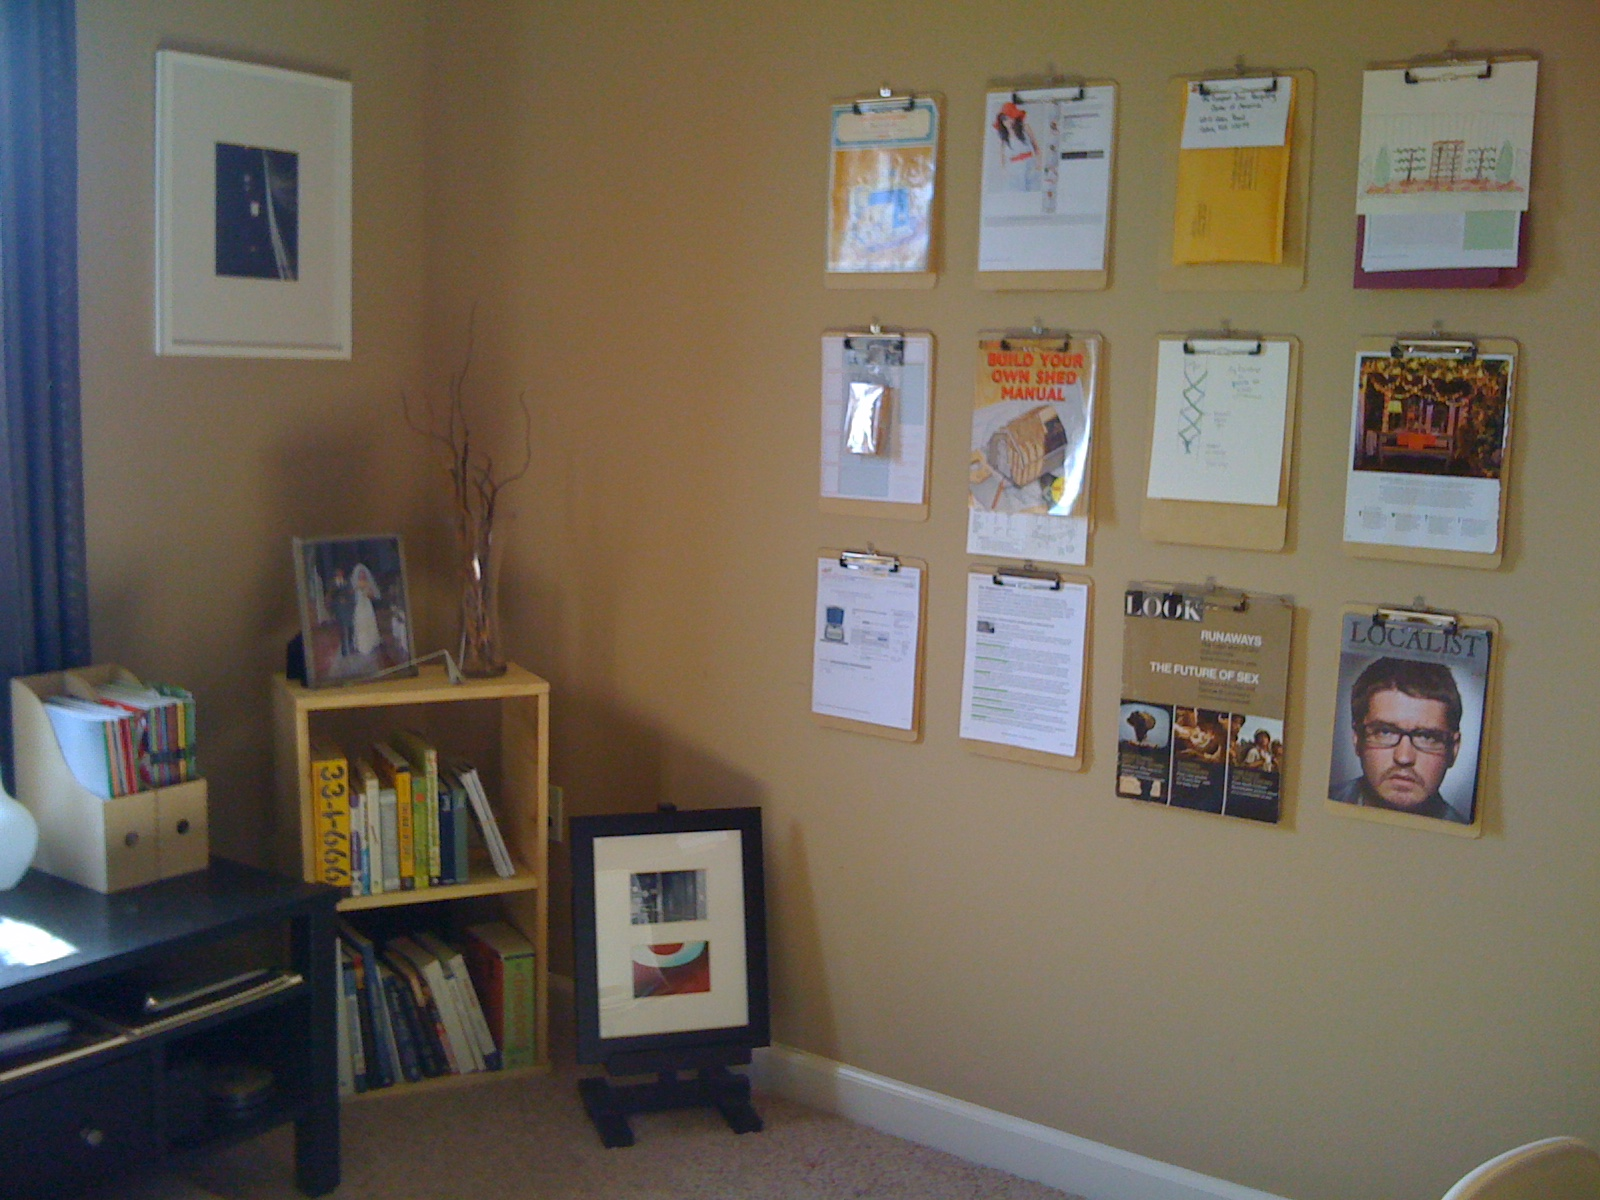 Back corner with new book shelf and idea wall